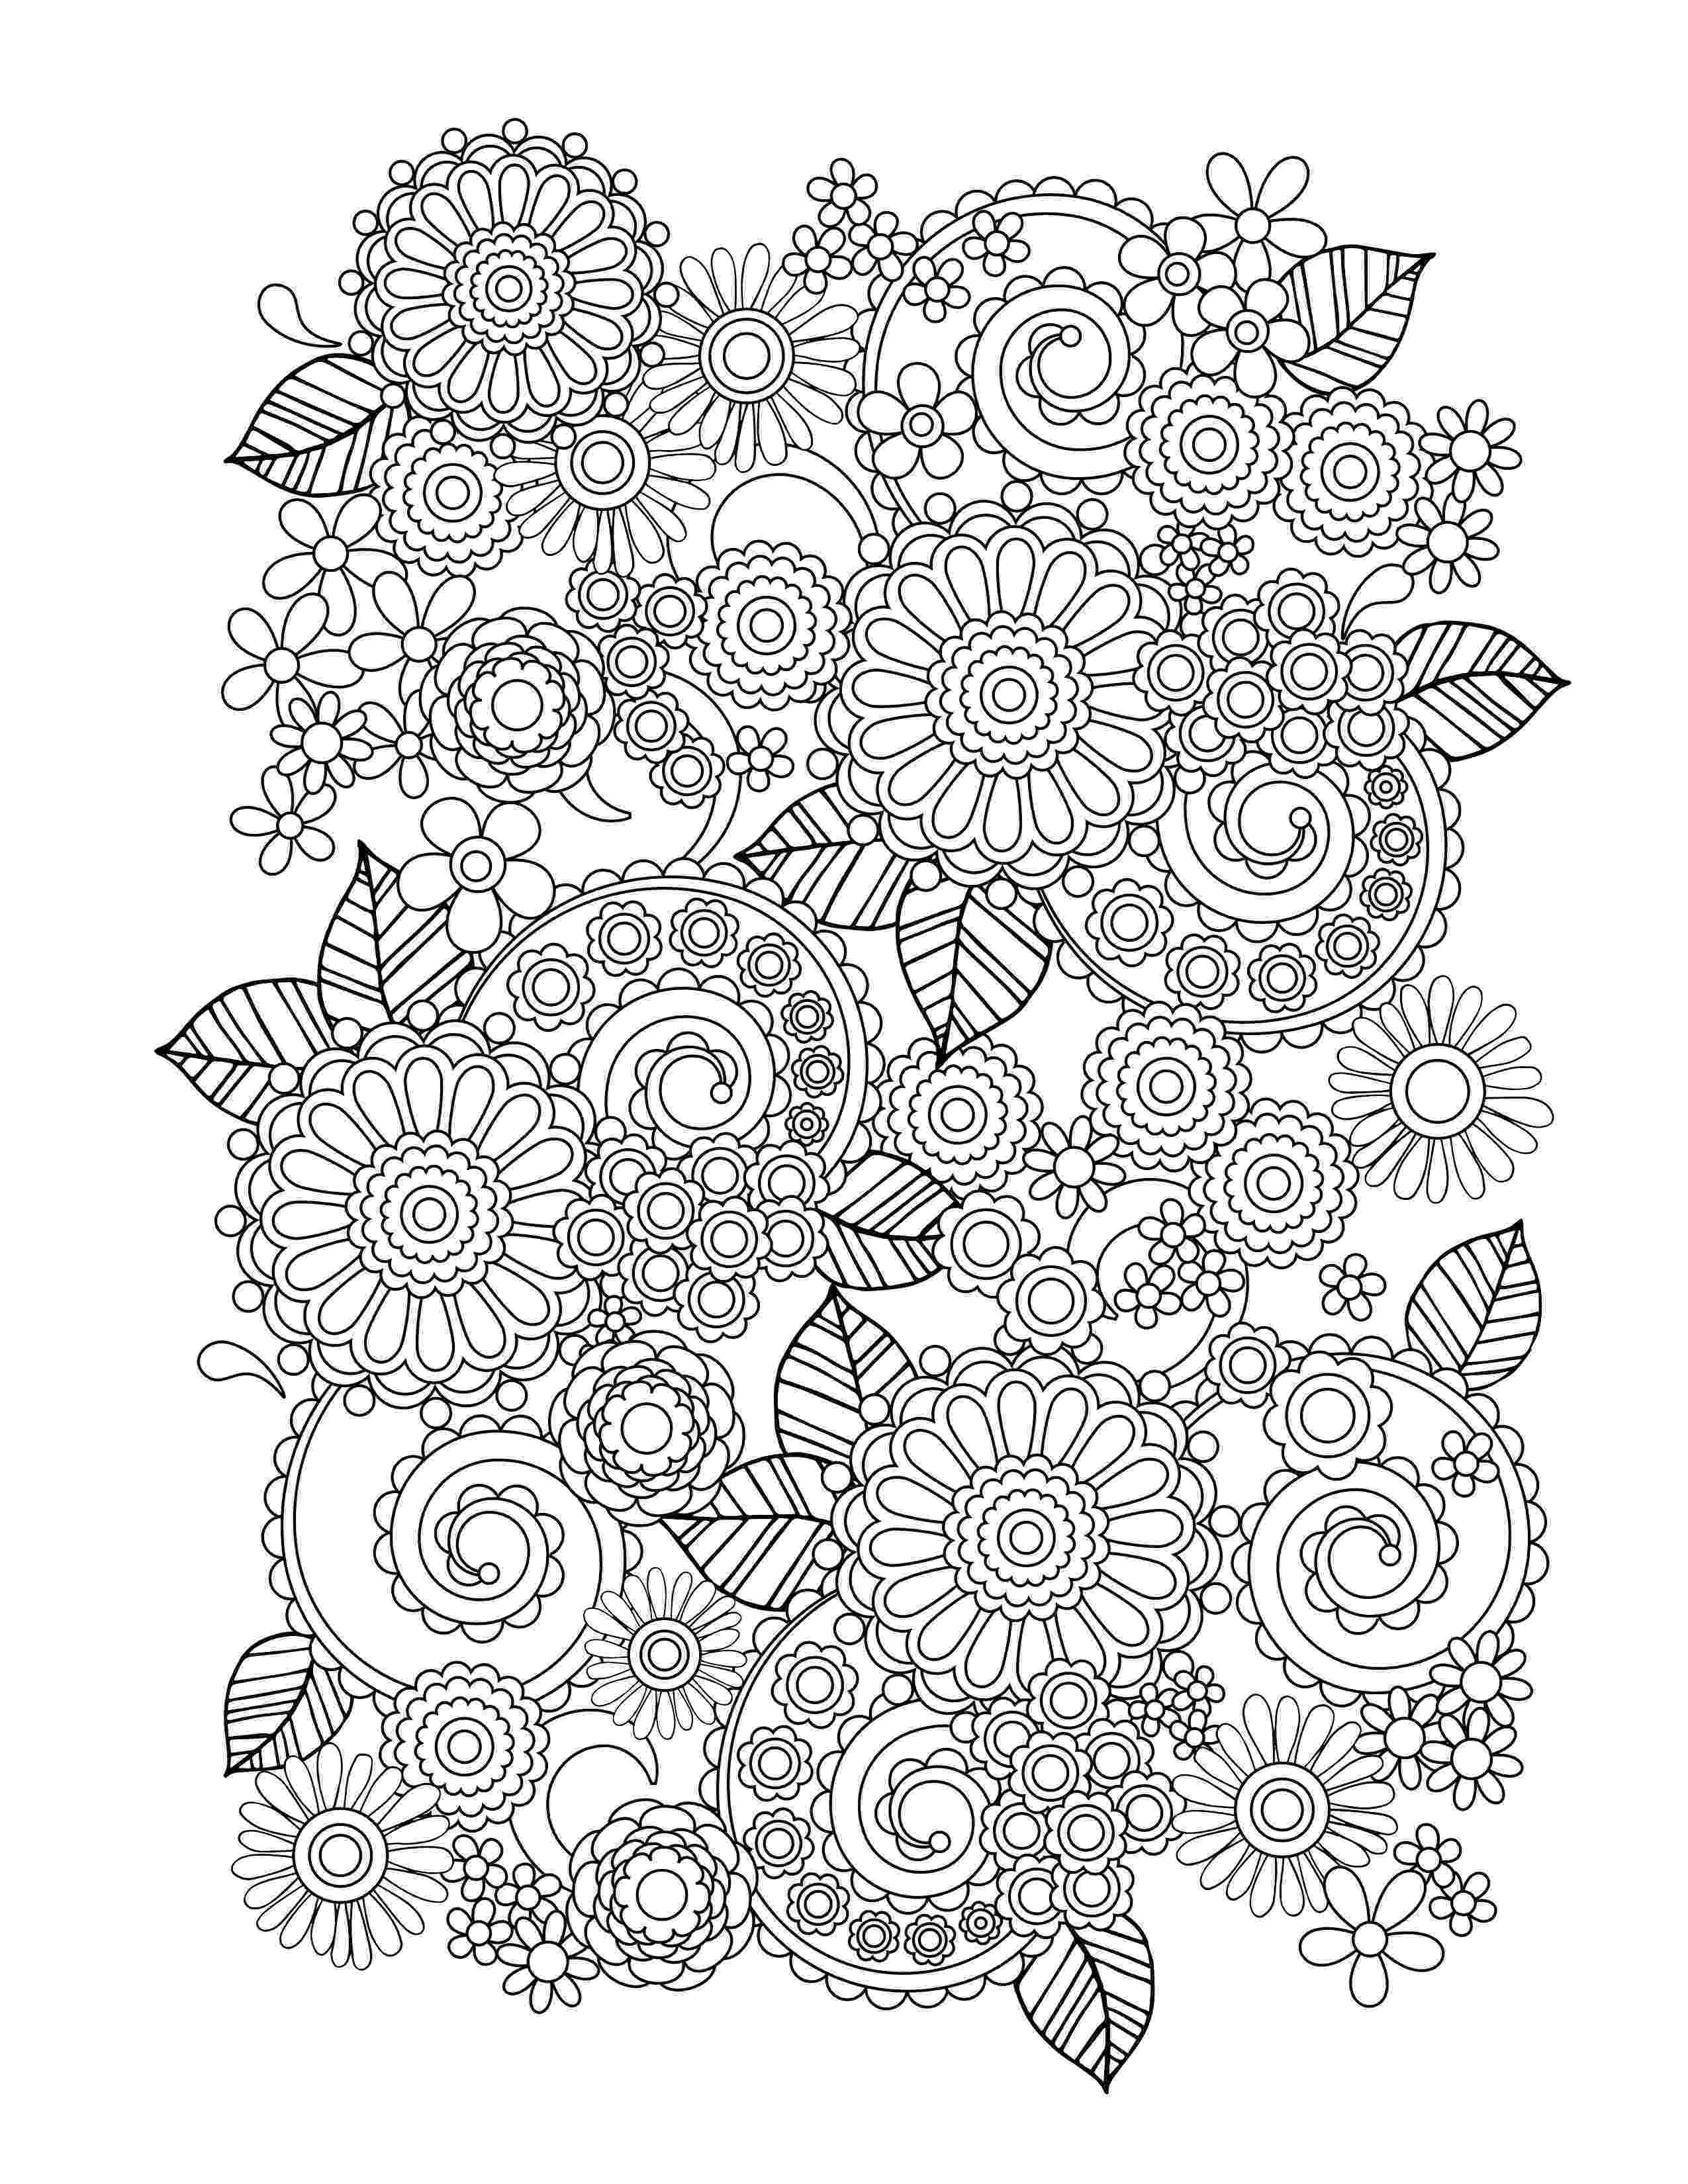 coloring for adults online free coloring pages for adults getcoloringpagescom free online adults for coloring